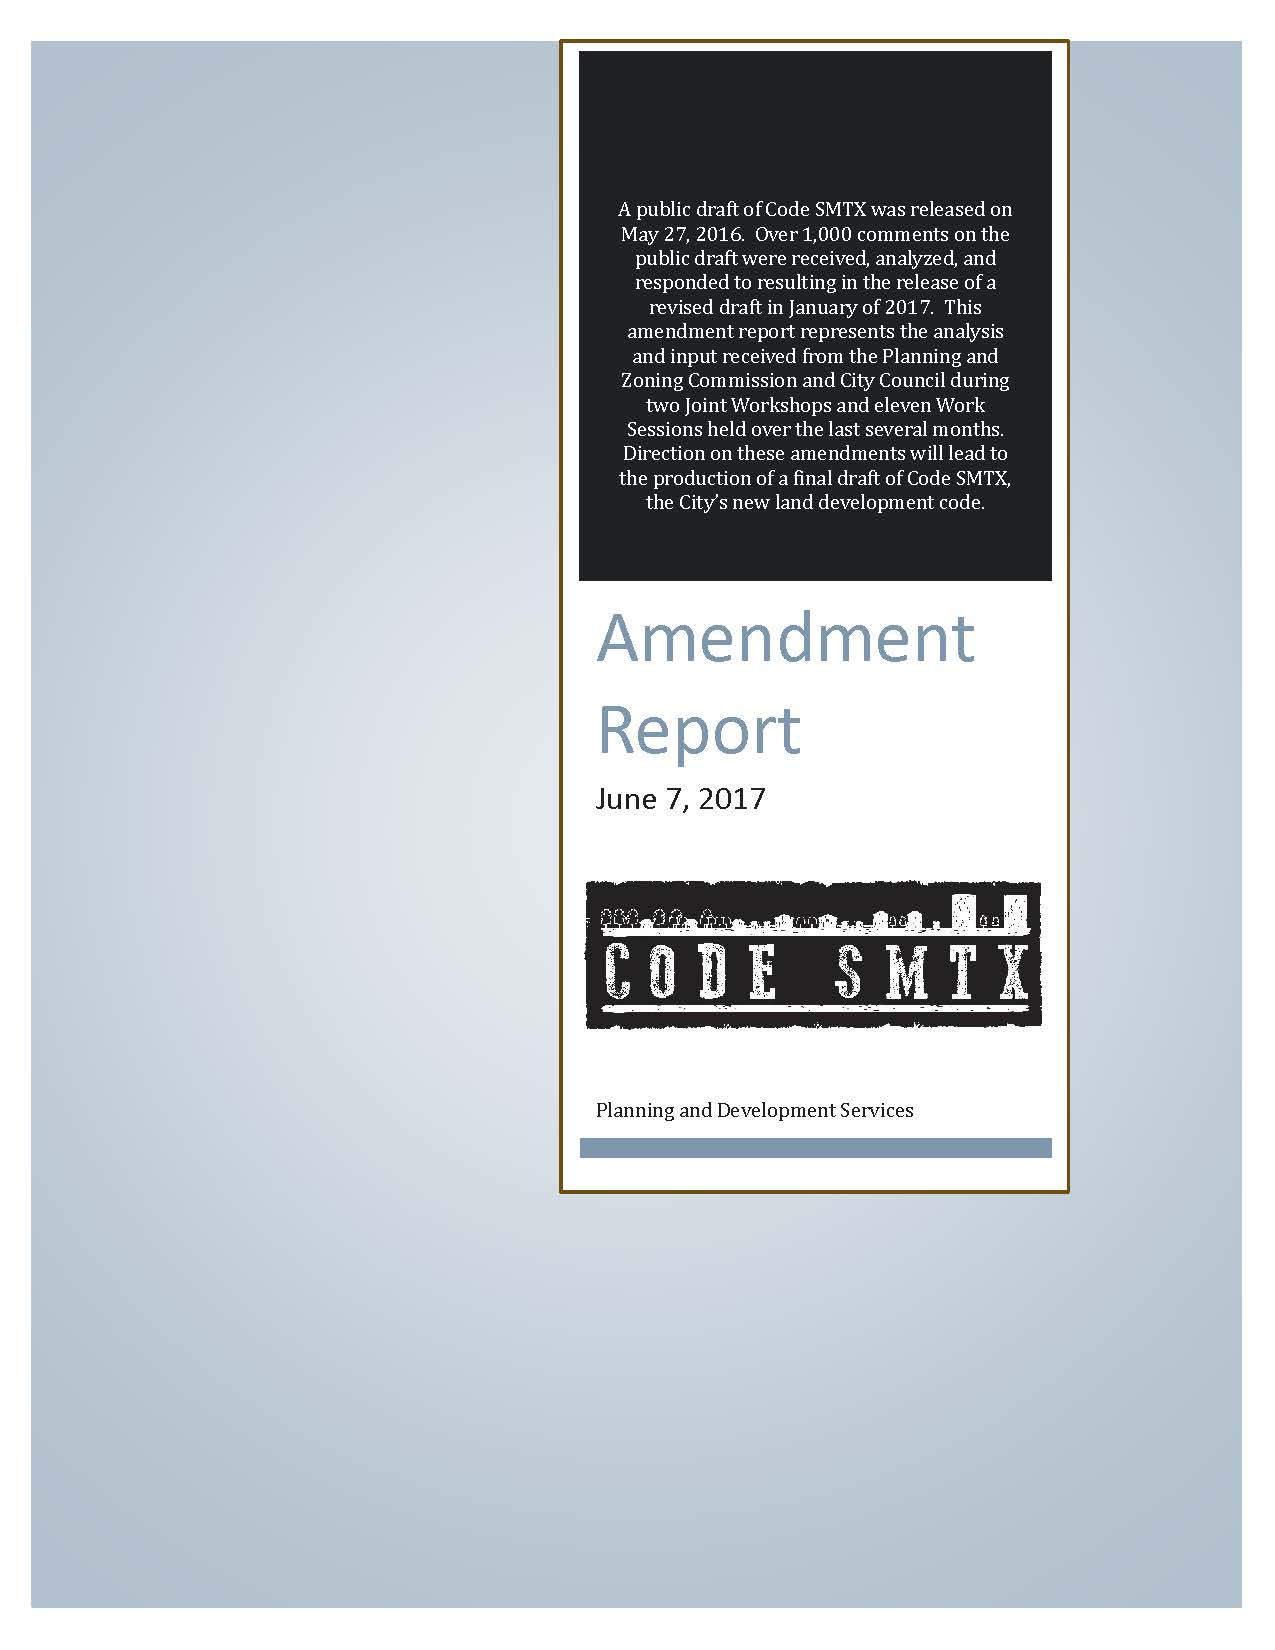 Front Page of the Amendment Report (jpg)